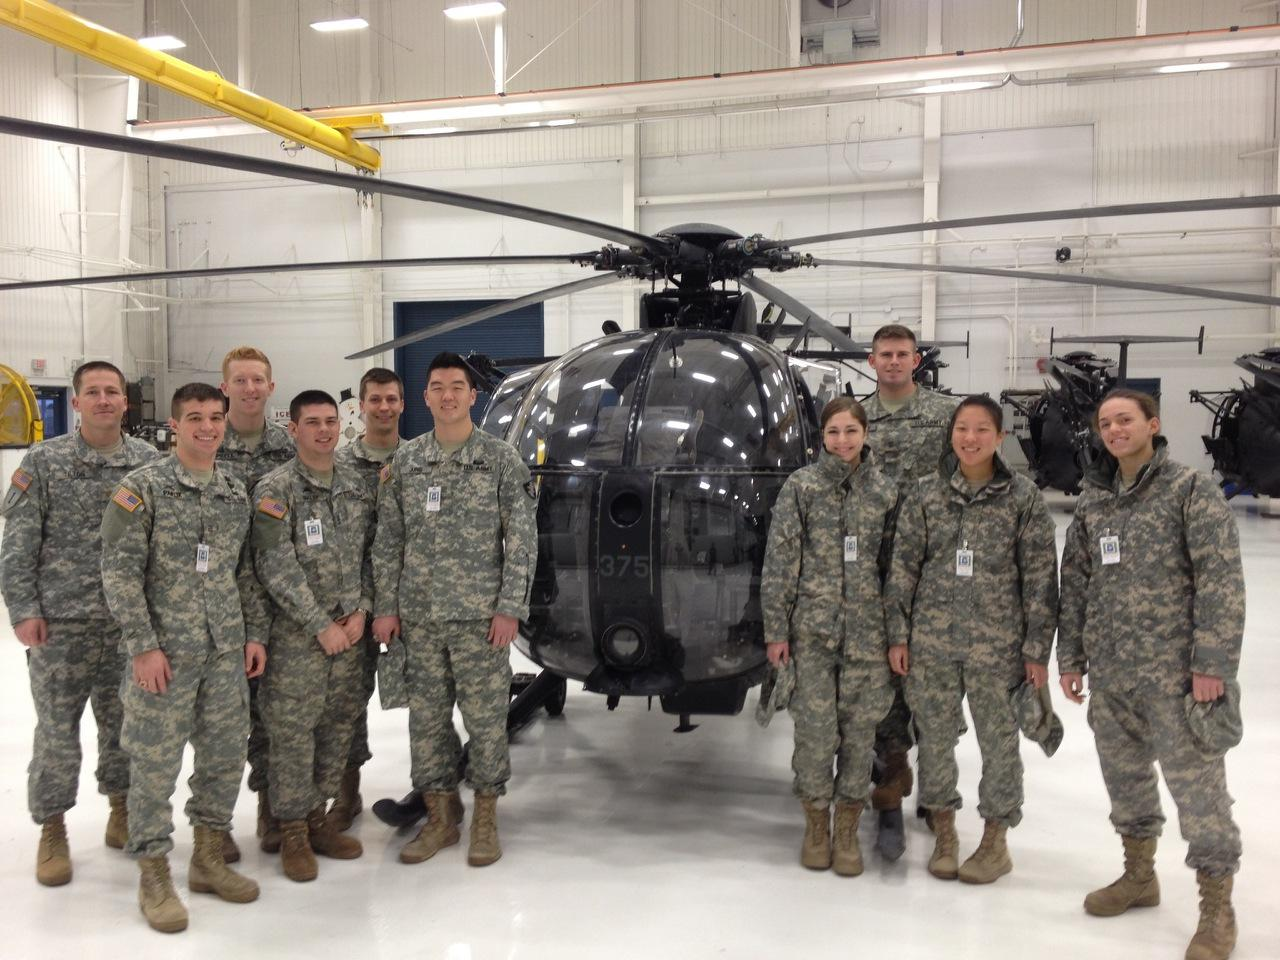 The Department of Systems Engineering sent cadets from both the SE403 year-long capstone and SE450 semester capstone project to Fort Campbell to meet with the 160th Special Operations Aviation Regiment (SOAR).